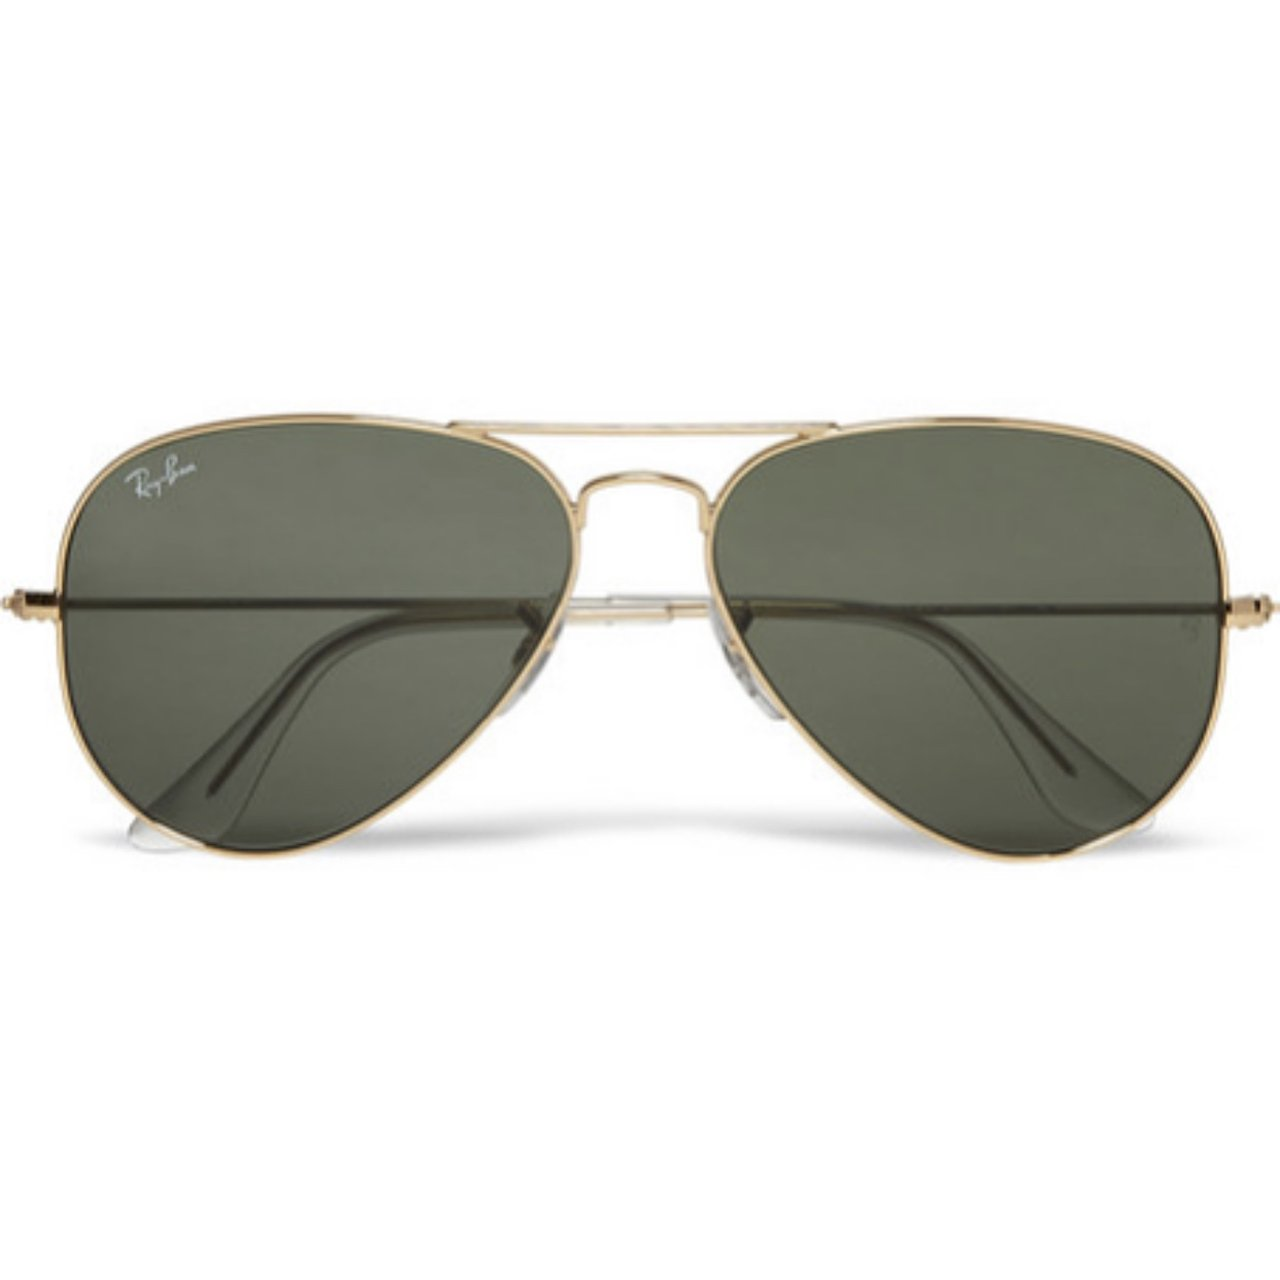 b537b05edd RAY-BAN Classic Unisex Aviator Sunglasses. Gold rim and army - Depop